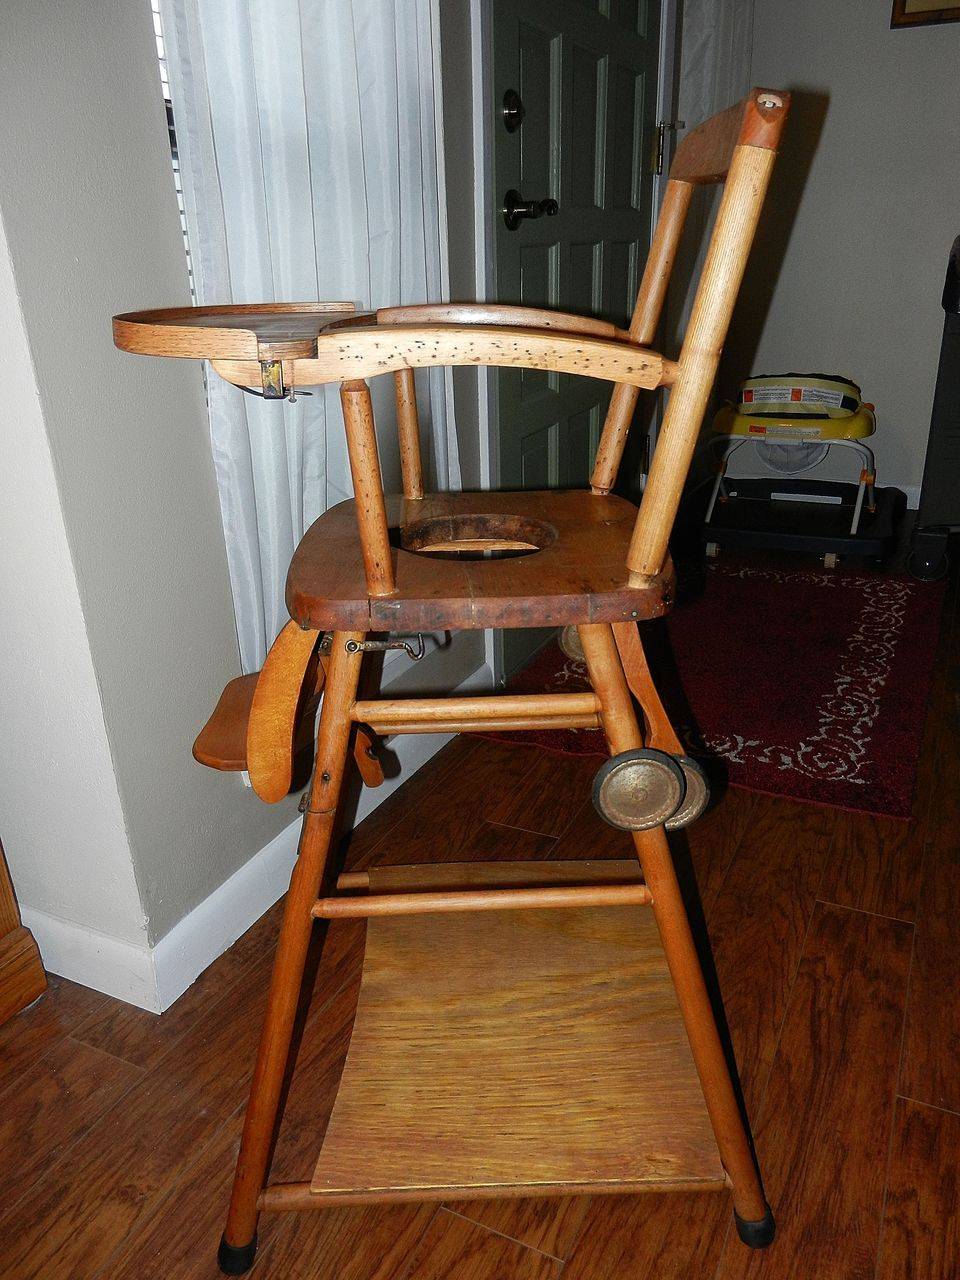 Antique Wooden High Chair With Wheels Best 2000 Decor Ideas - Antique Wooden High Chair With Wheels - Best 2000+ Antique Decor Ideas